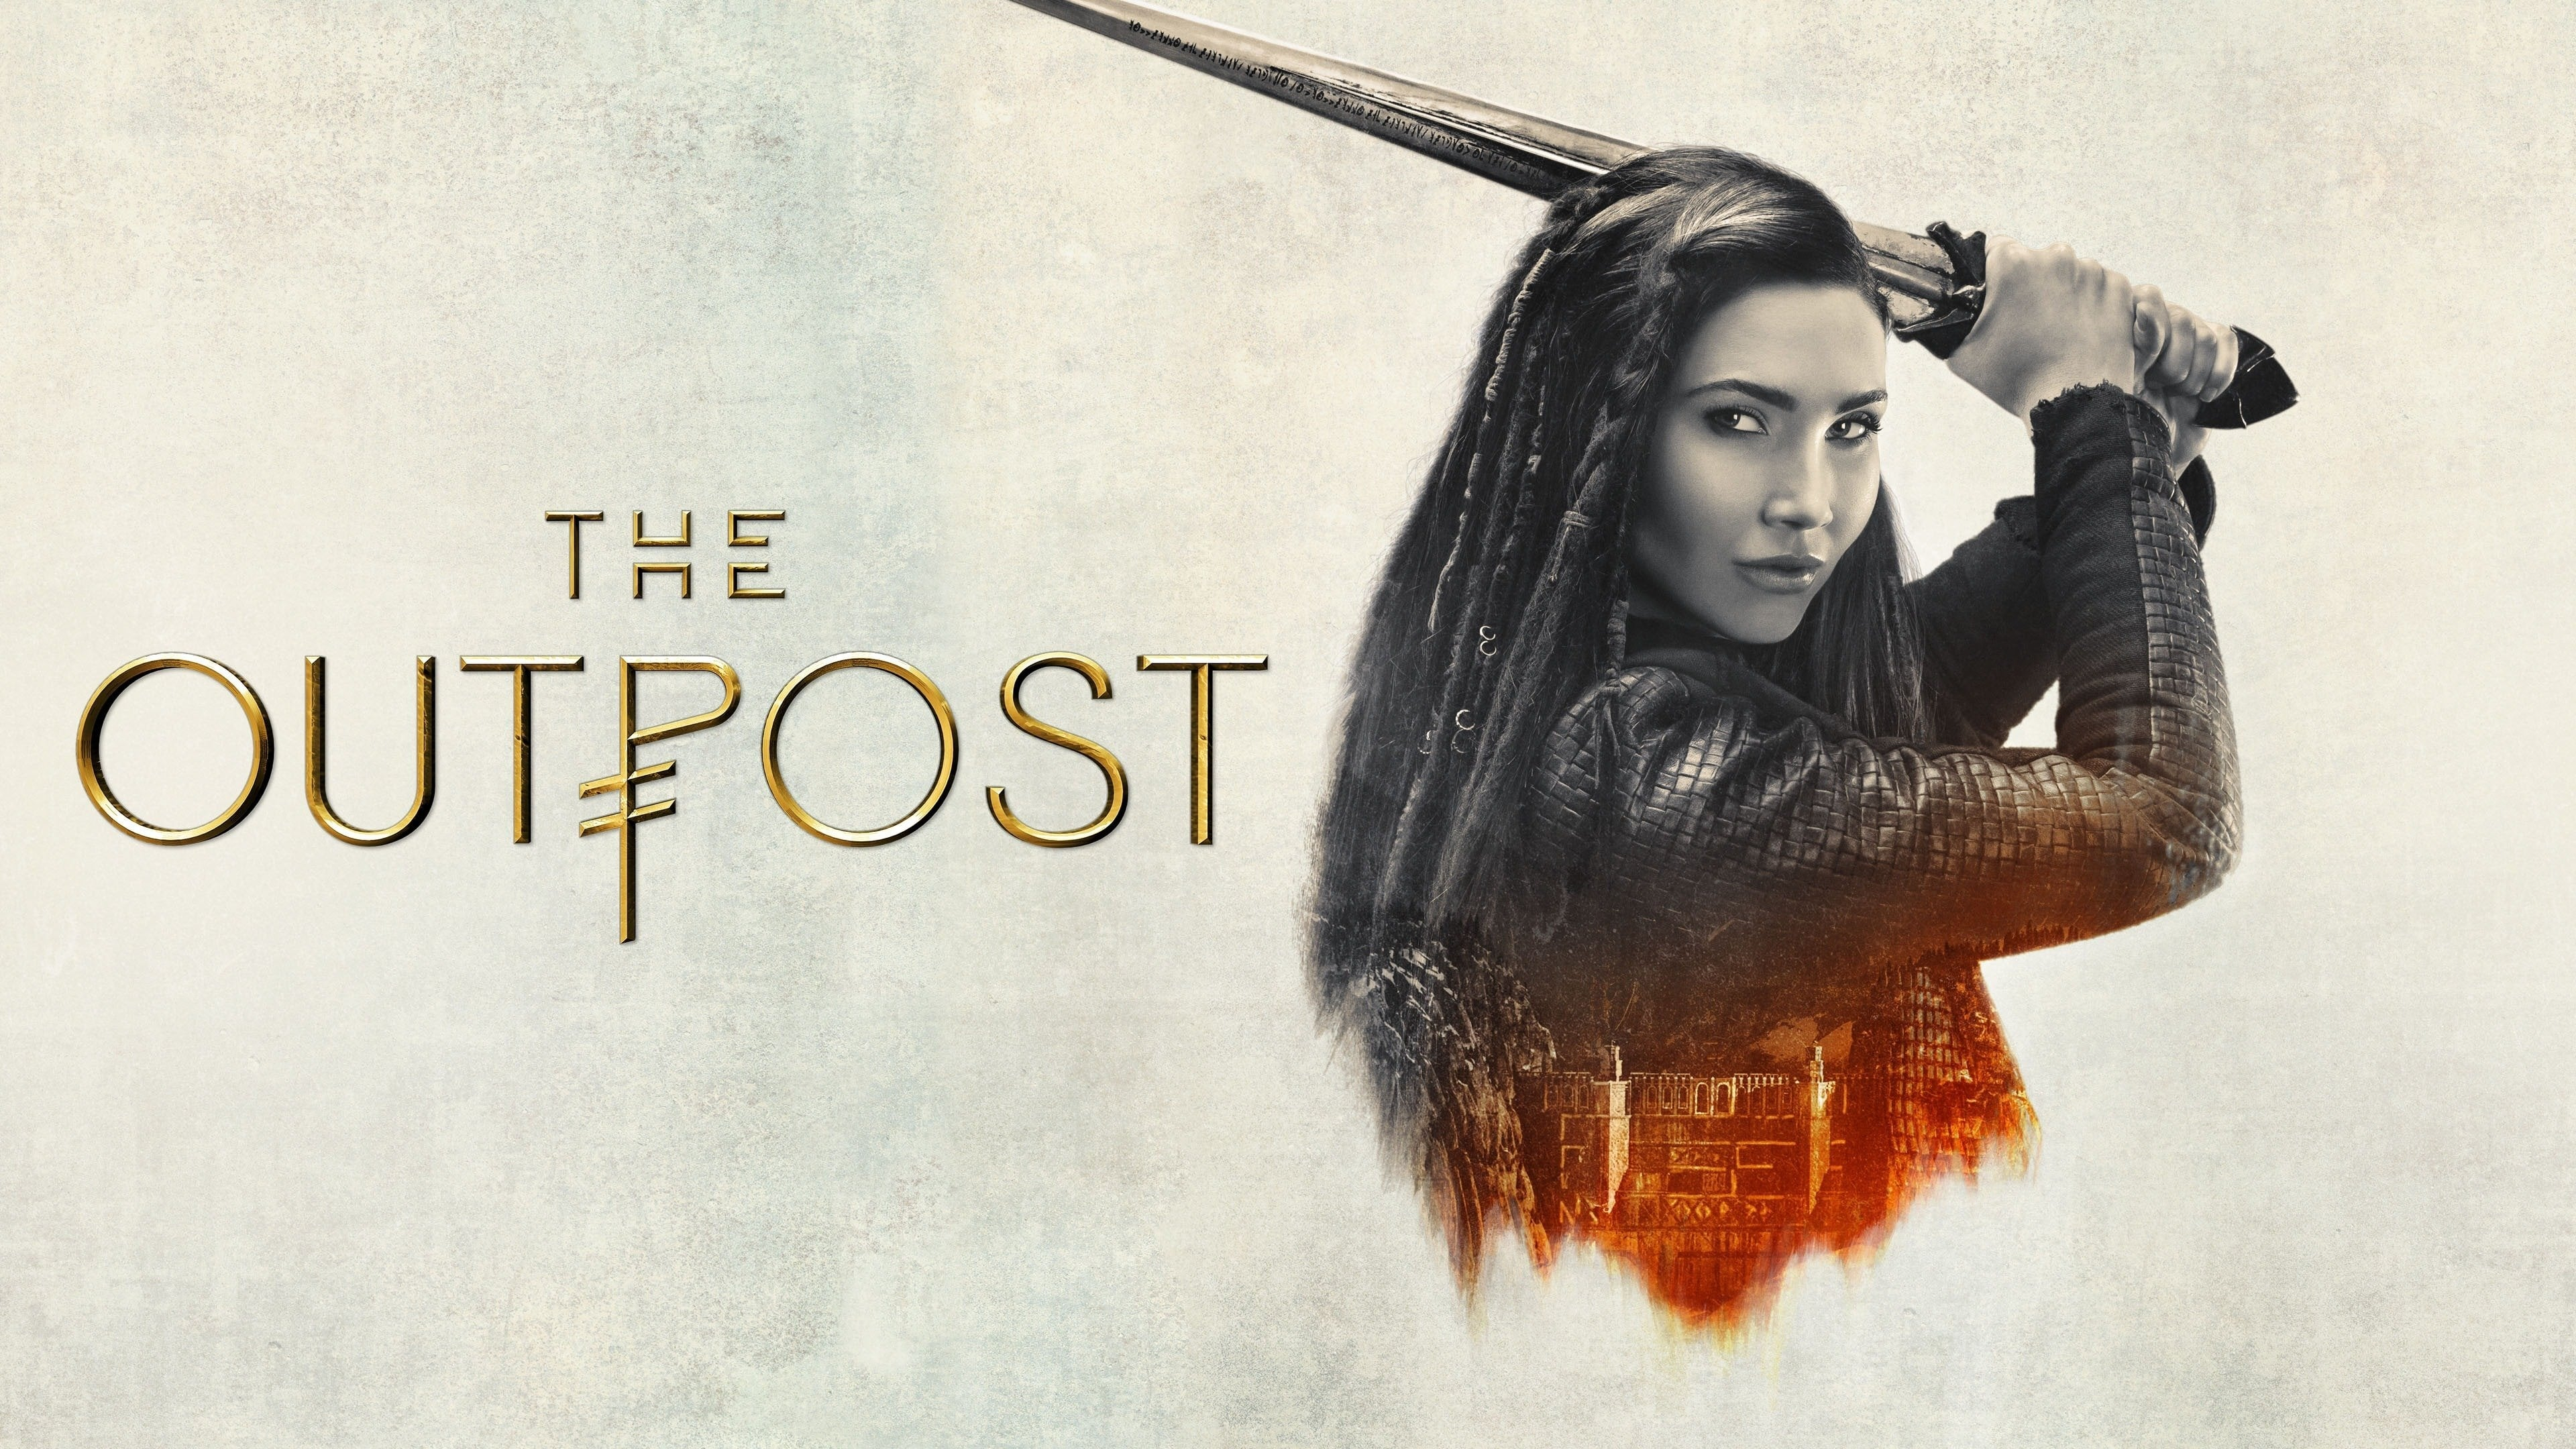 No fifth season for The Outpost